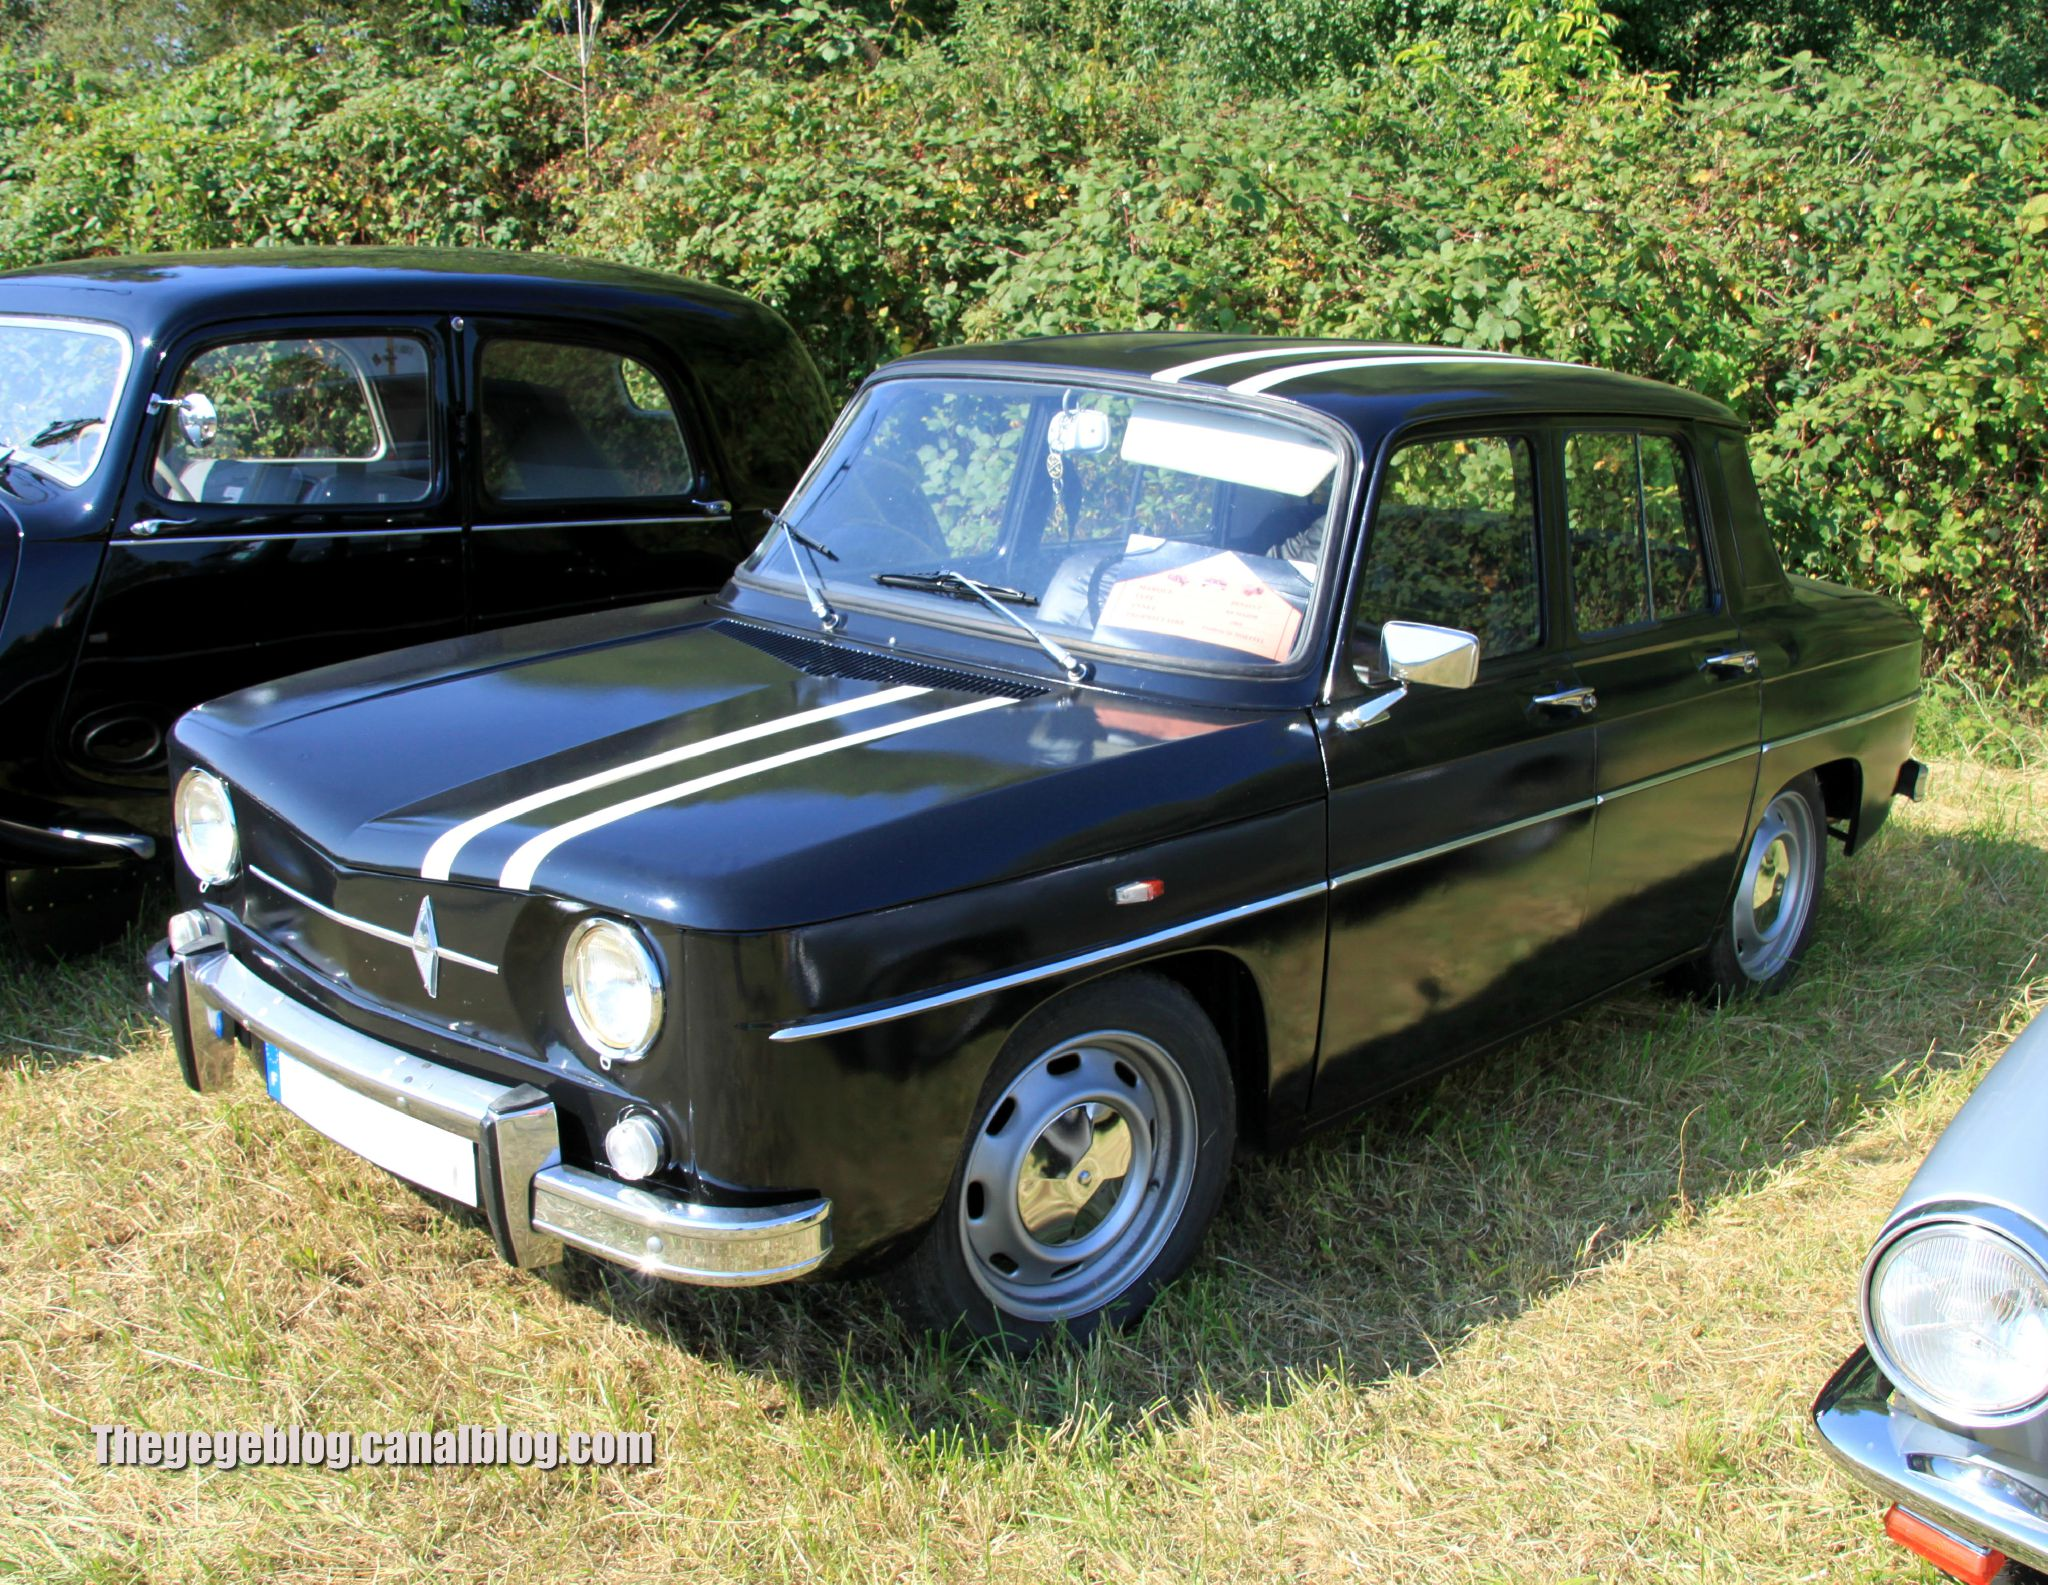 renault 8 major de 1965 auto retro nord alsace betschdorf. Black Bedroom Furniture Sets. Home Design Ideas